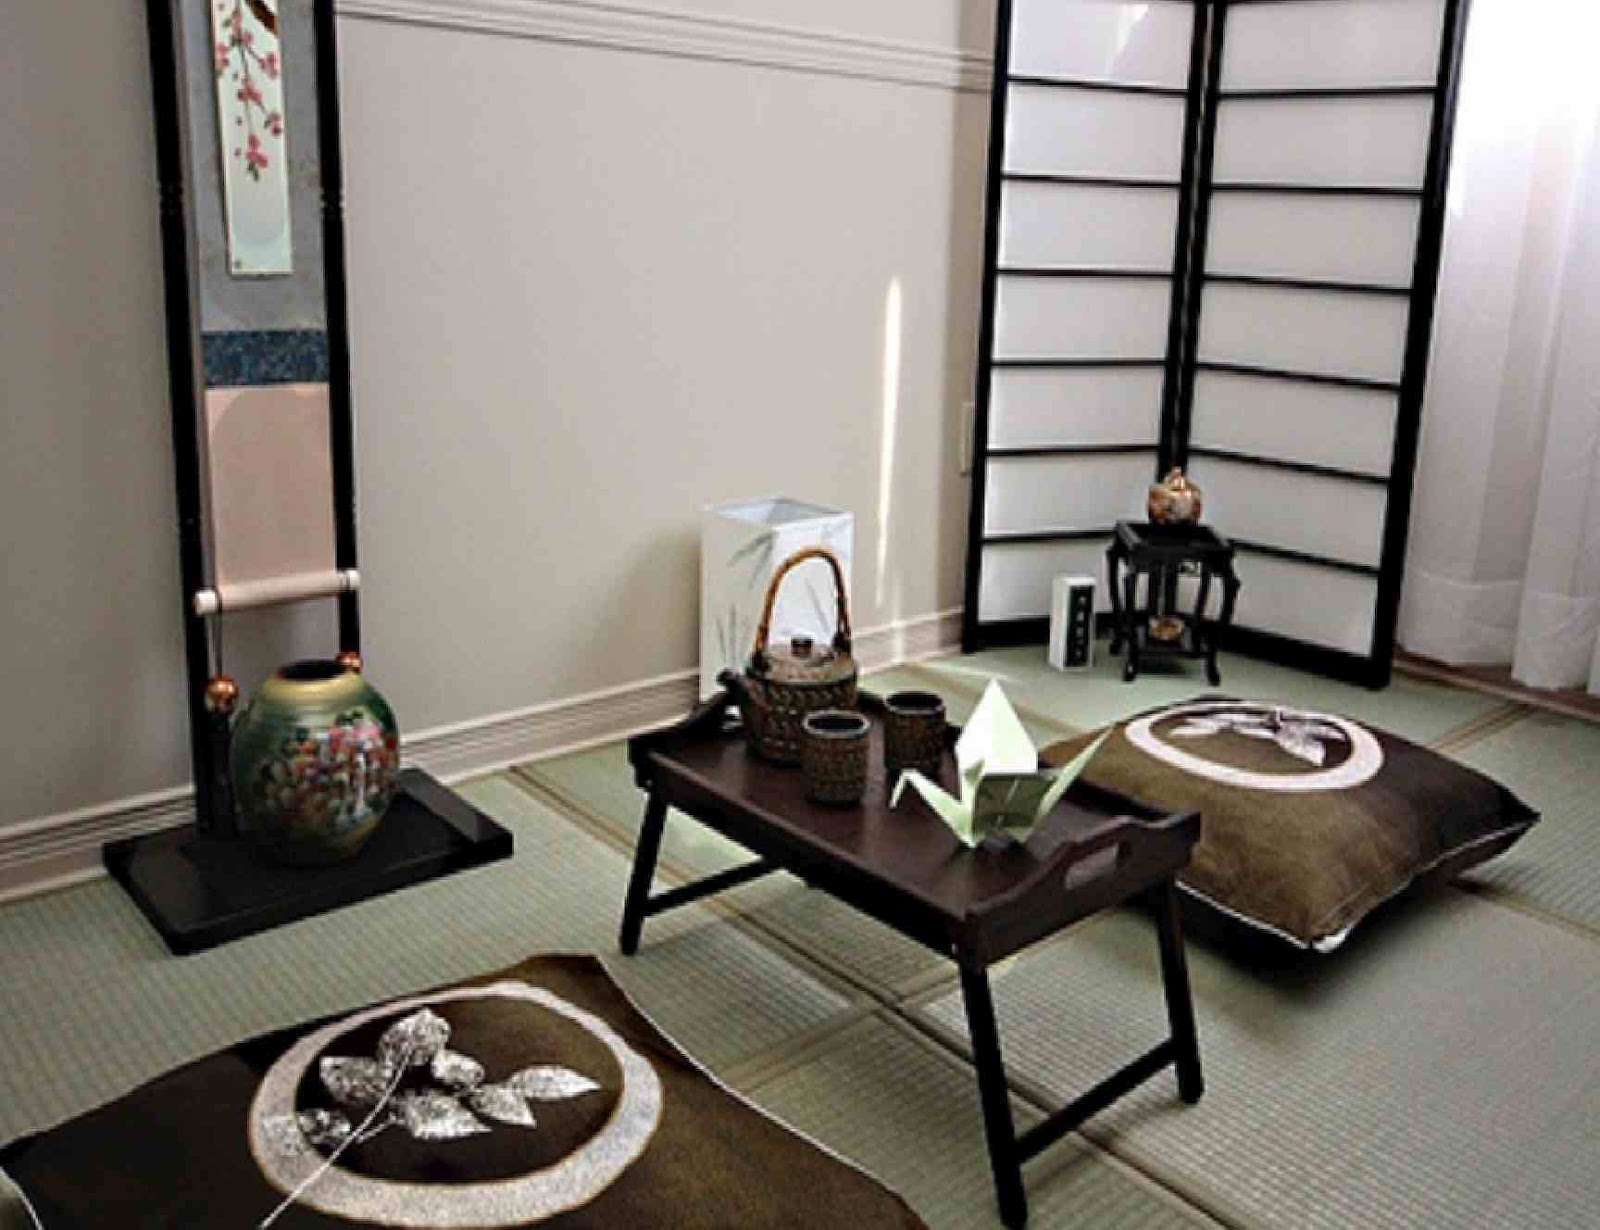 Japanese interior design interior home design for Japanese home decorations